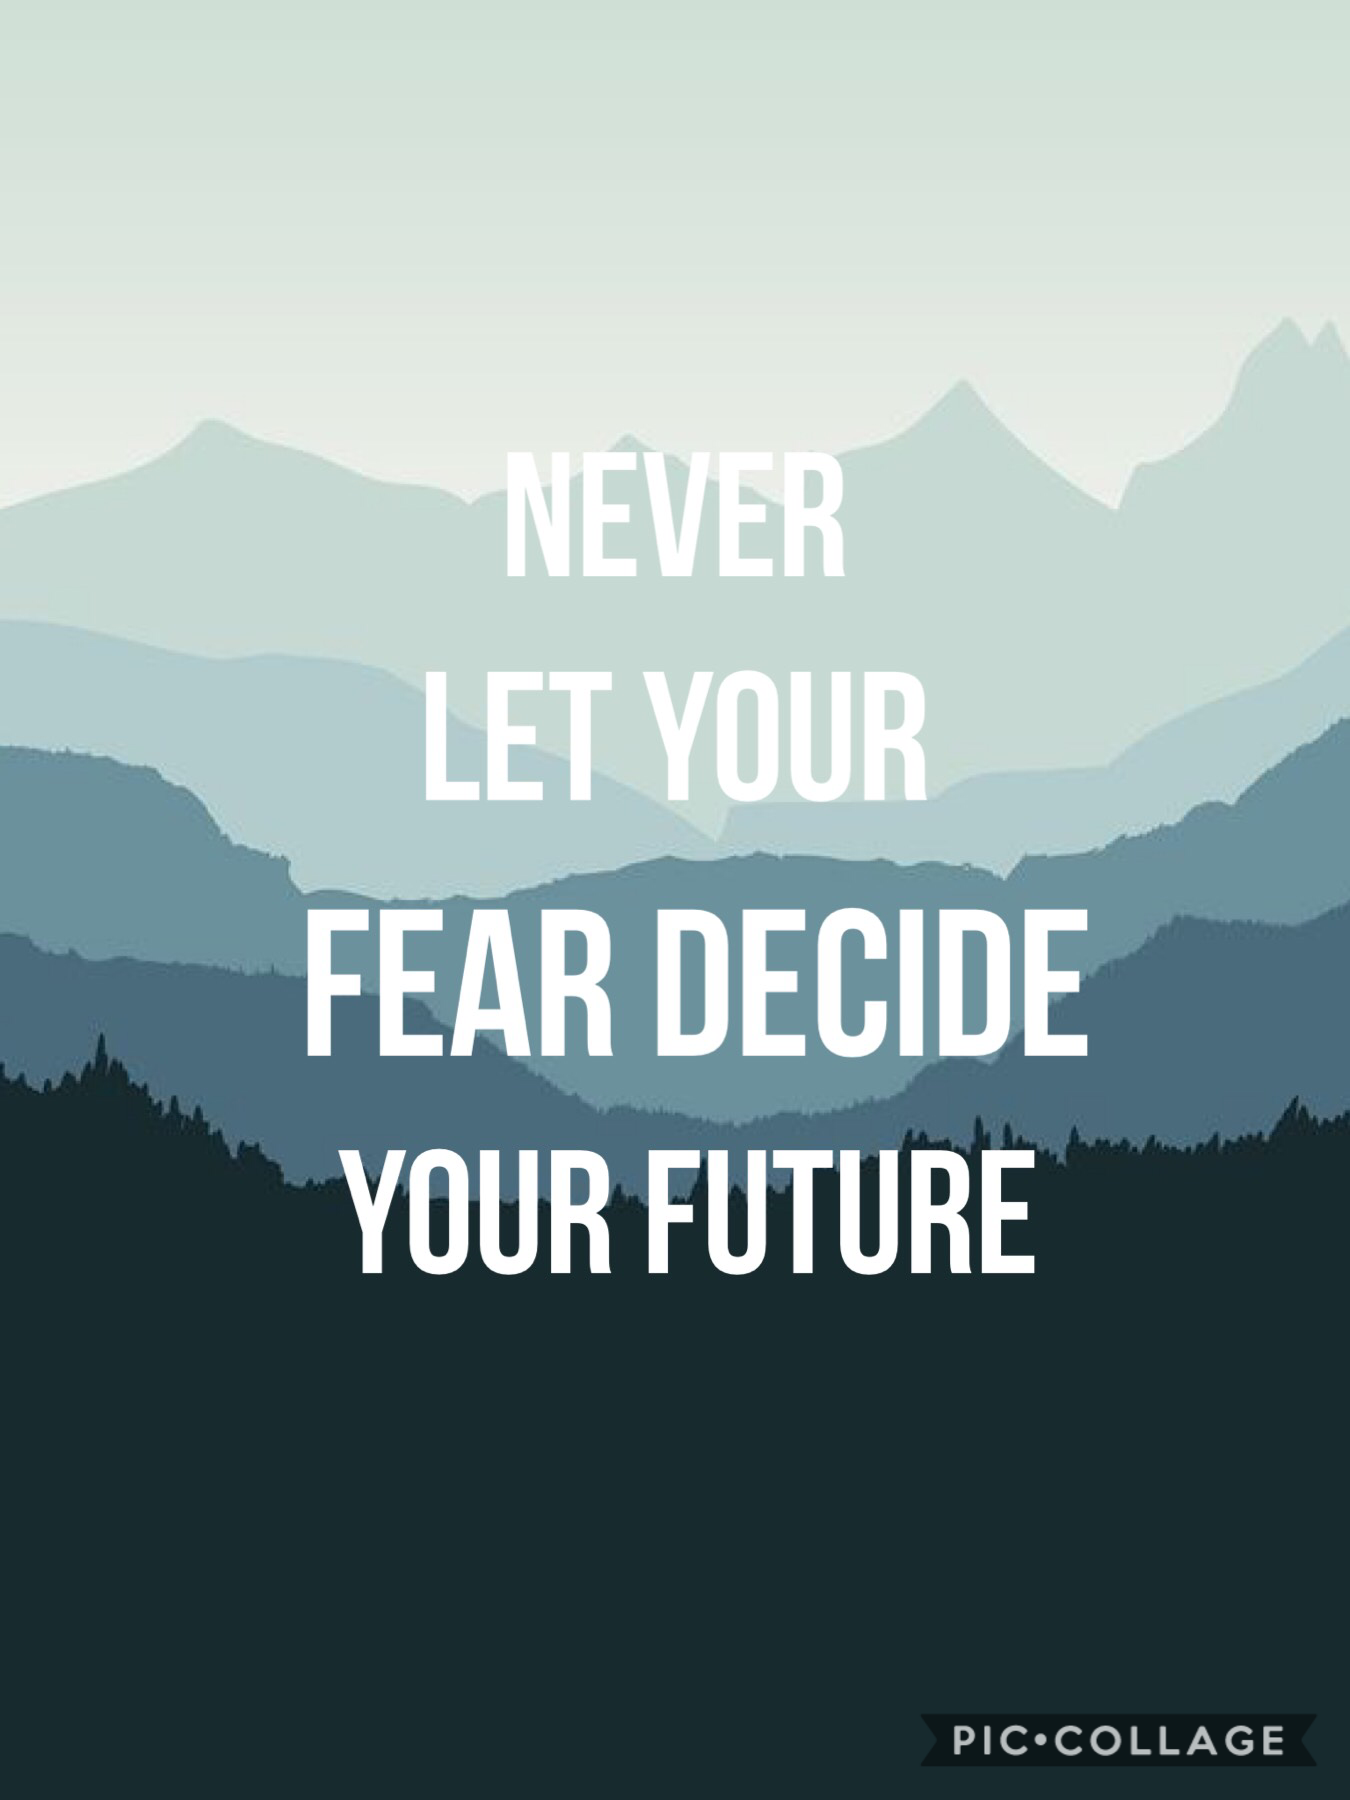 Never let you fear decide your future 👍